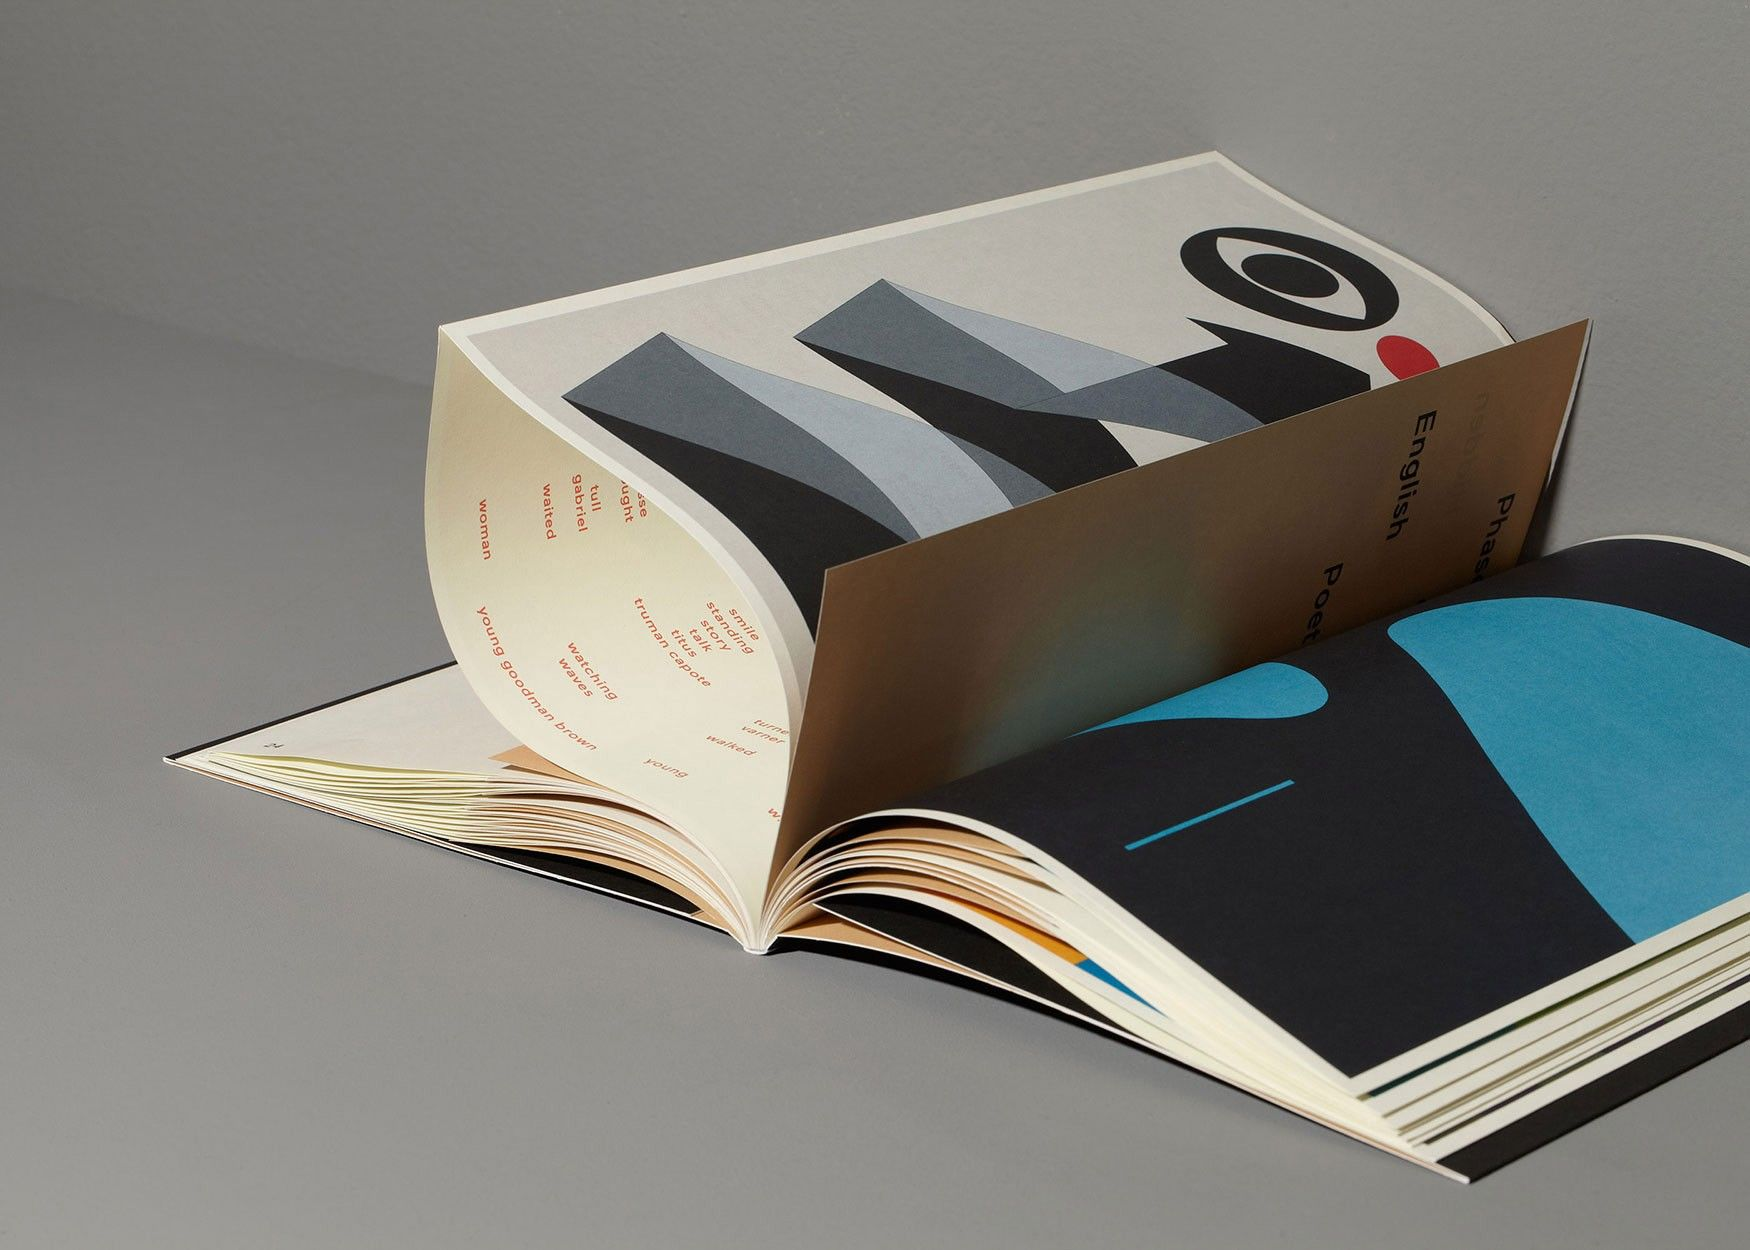 by mainstudio thomas raat is a conceptual artist  his book